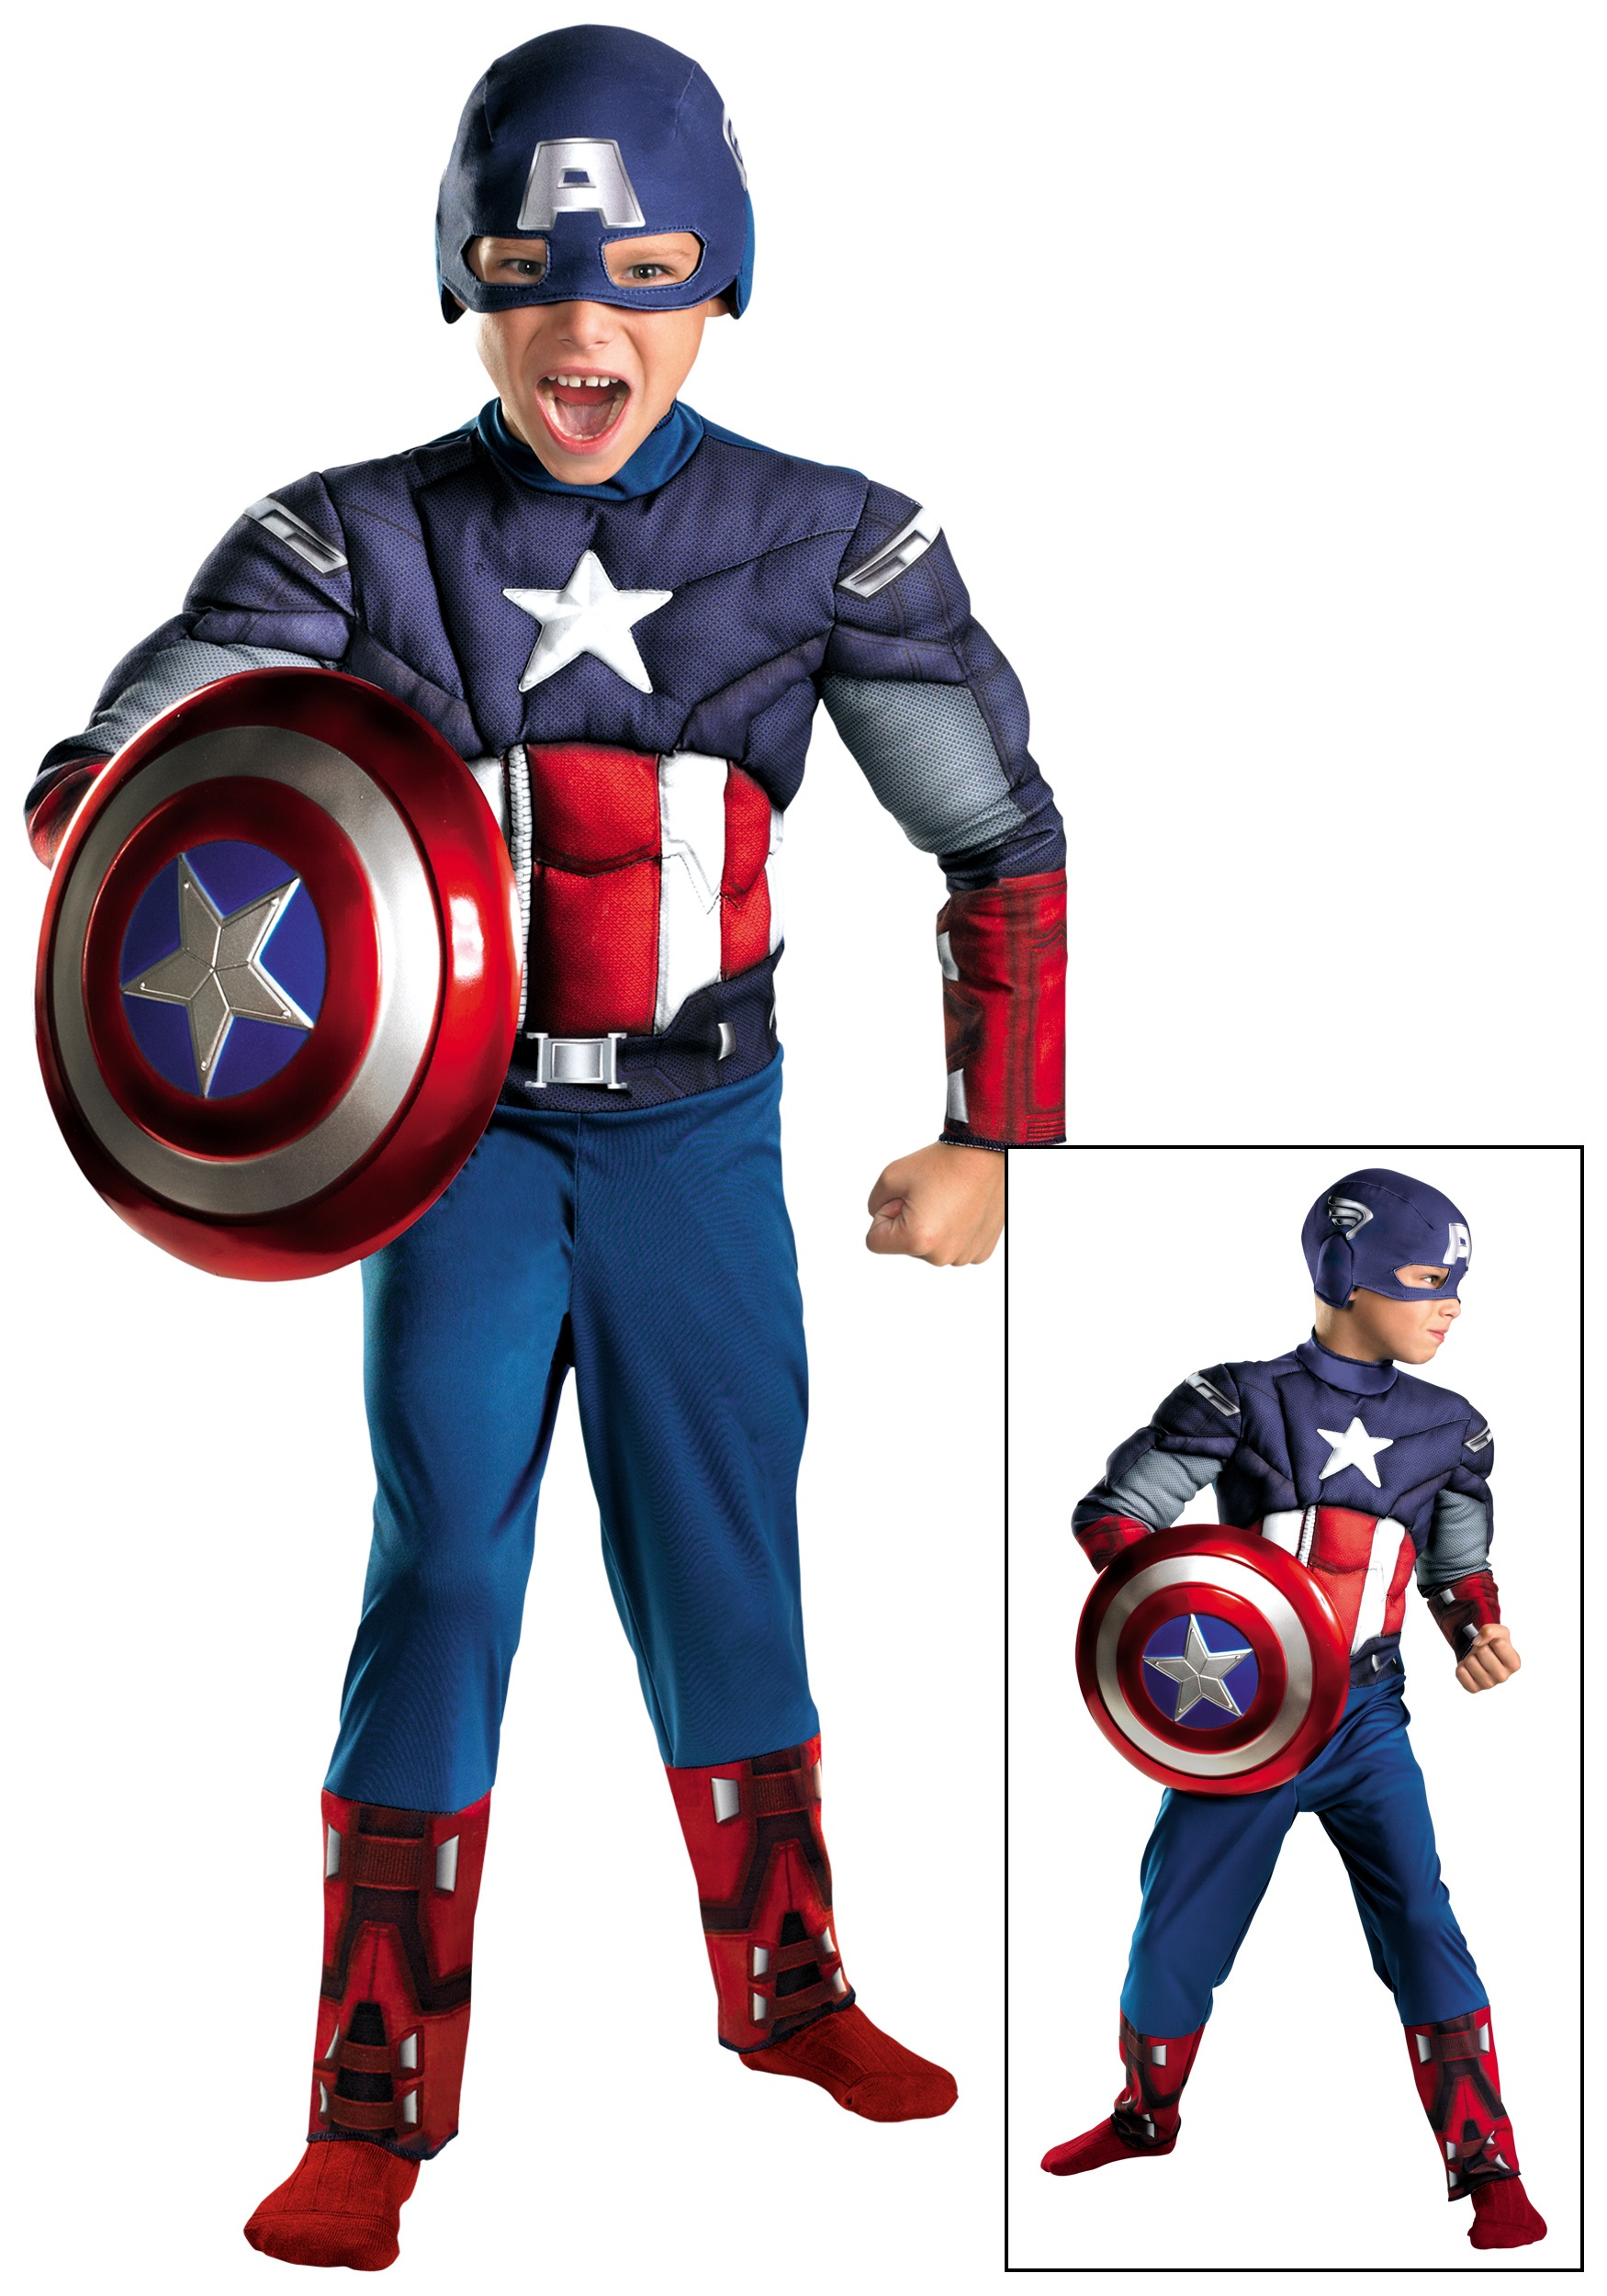 Kids Avengers Captain America Muscle Costume  sc 1 st  Halloween Costumes & Kids Avengers Captain America Muscle Costume - Halloween Costumes